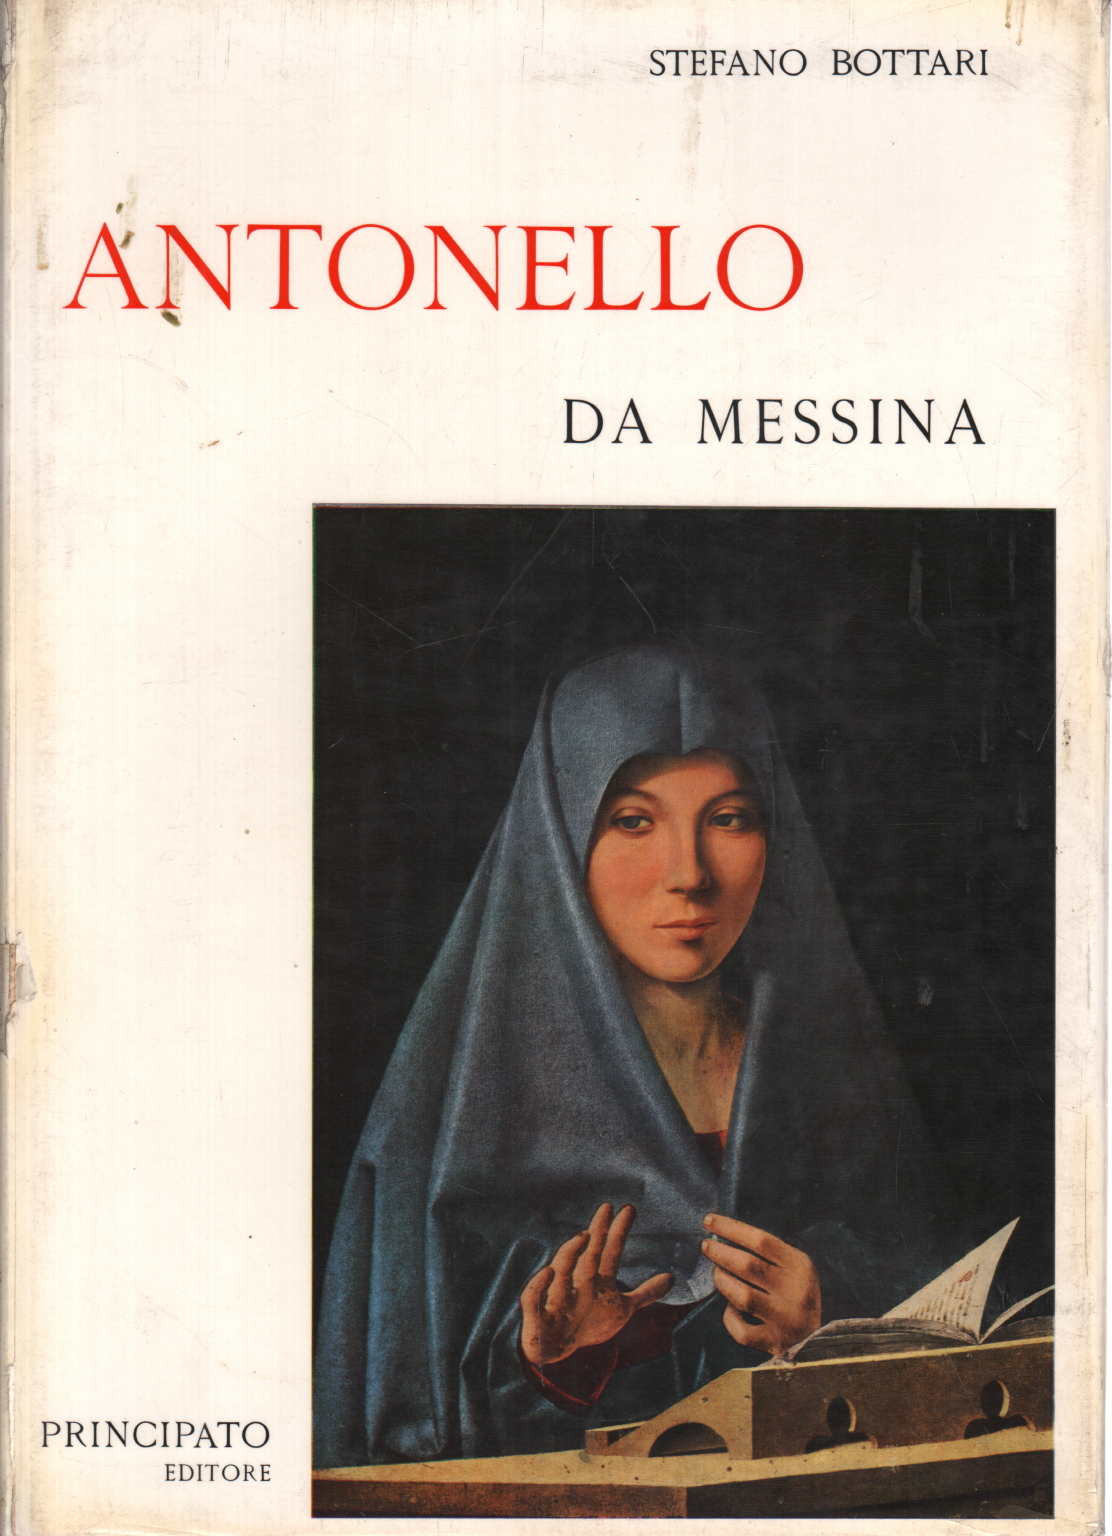 Antonello da Messina, Stefano Bottari